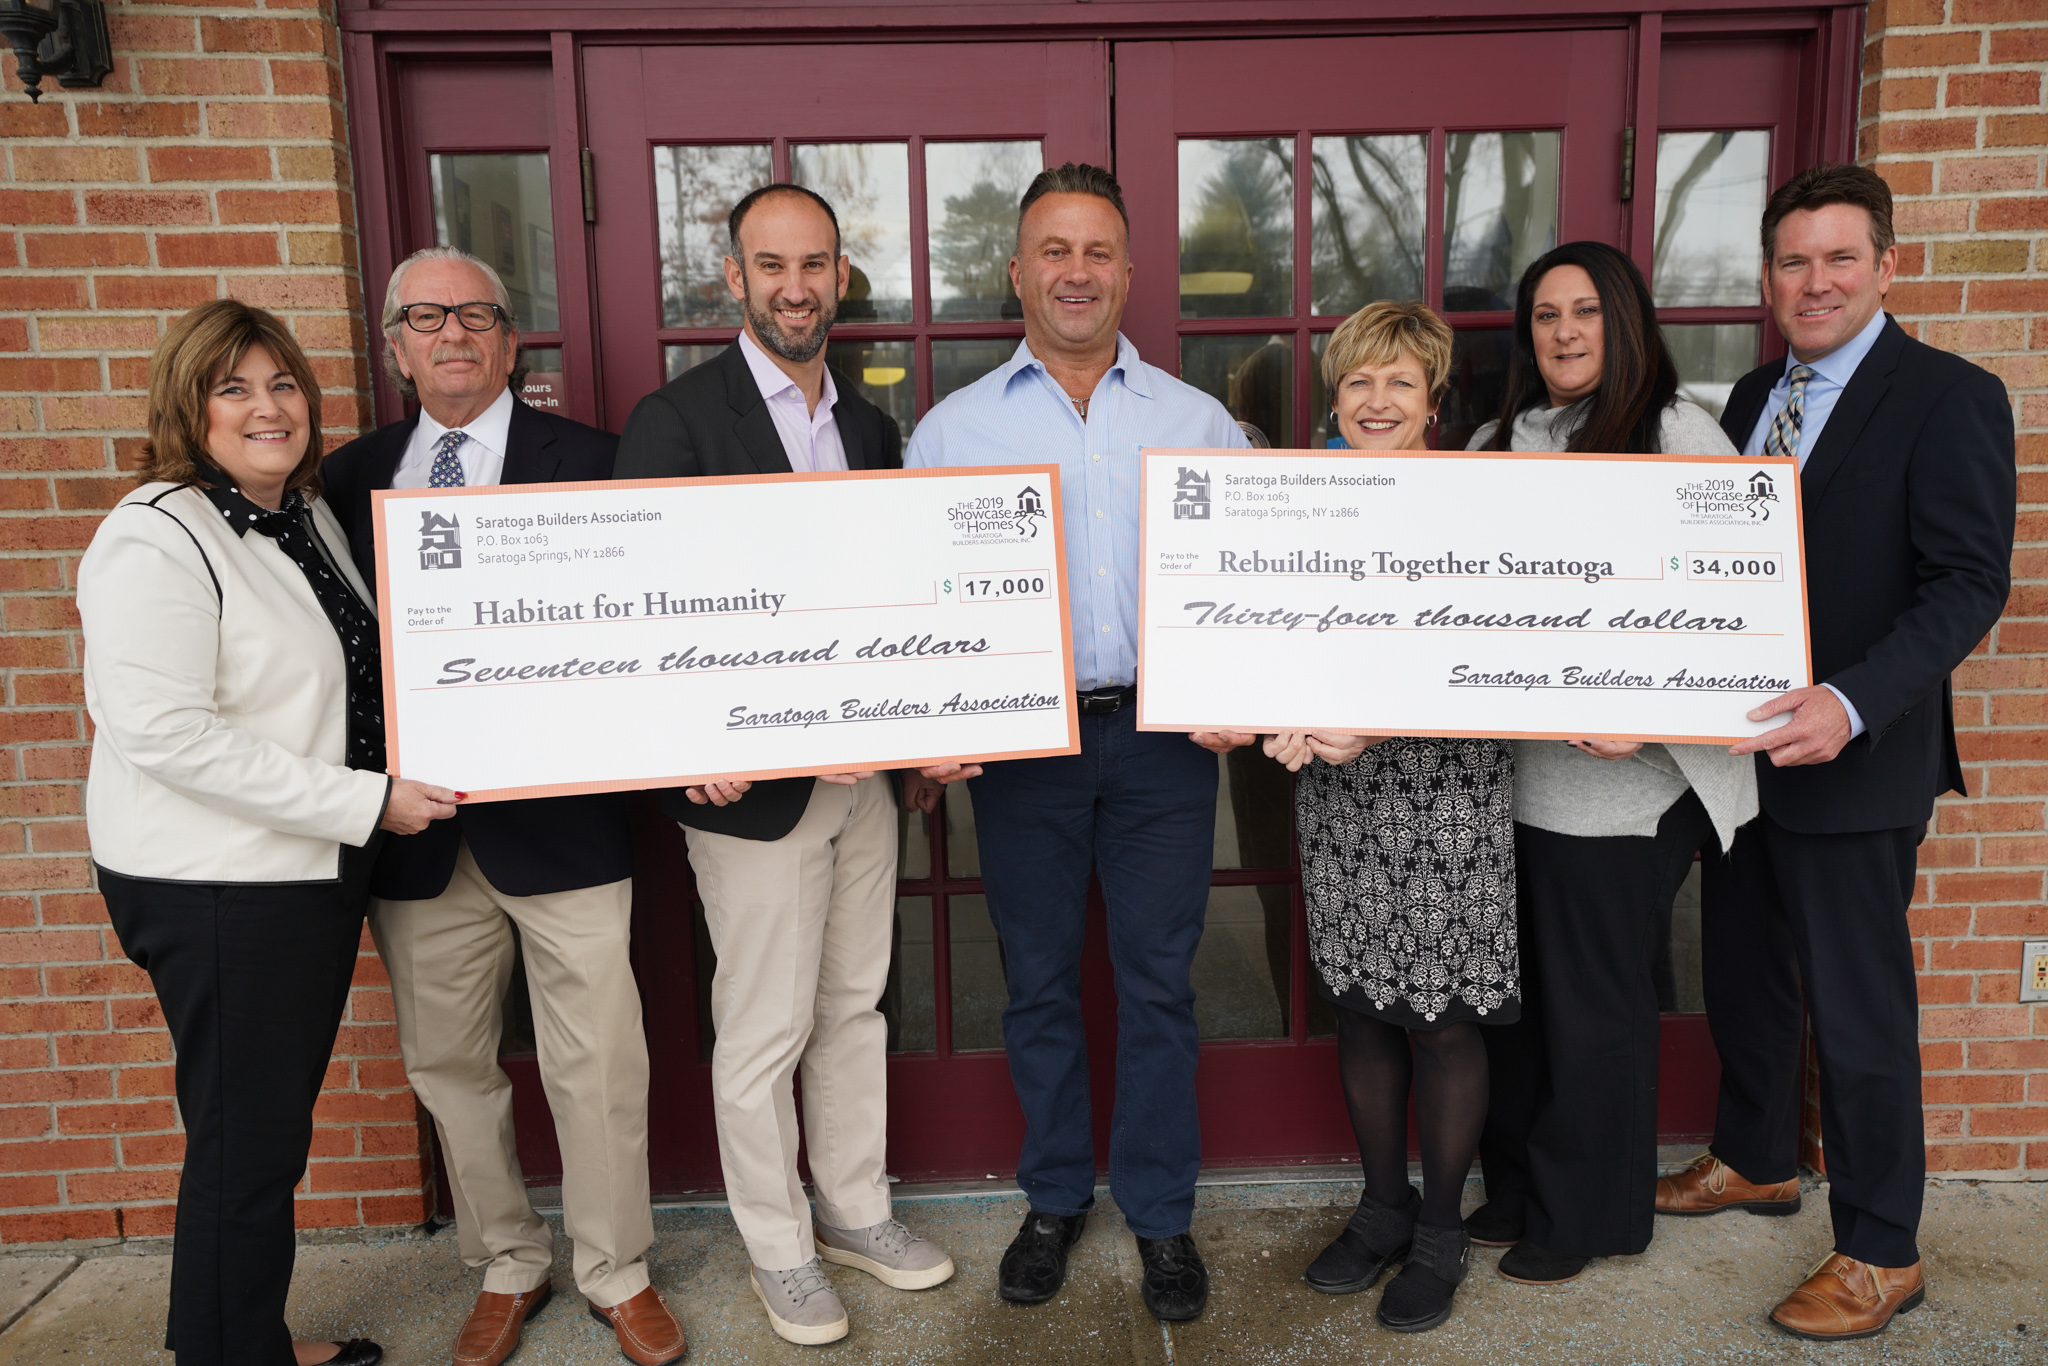 The Saratoga Builders Association is proud to present a total of $51,000 to our local charities from the proceeds of the 2019 Saratoga Showcase of Homes. From left to right: Martha McQuigge, Vice President – Saratoga National Bank; Barry Potoker, Executive Director & Showcase Co-Chair – Saratoga Builders Association; Adam Feldman, Executive Director – Habitat for Humanity of Northern Saratoga, Warren & Washington Counties; Dave Trojanski, Bonacio Construction & President – Saratoga Builders Association; Michelle Larkin, Executive Director - Rebuilding Together Saratoga County; Lisa Licata, Sterling Homes & Showcase Co-Chair; Mark Hogan, Vice President - Saratoga National Bank.